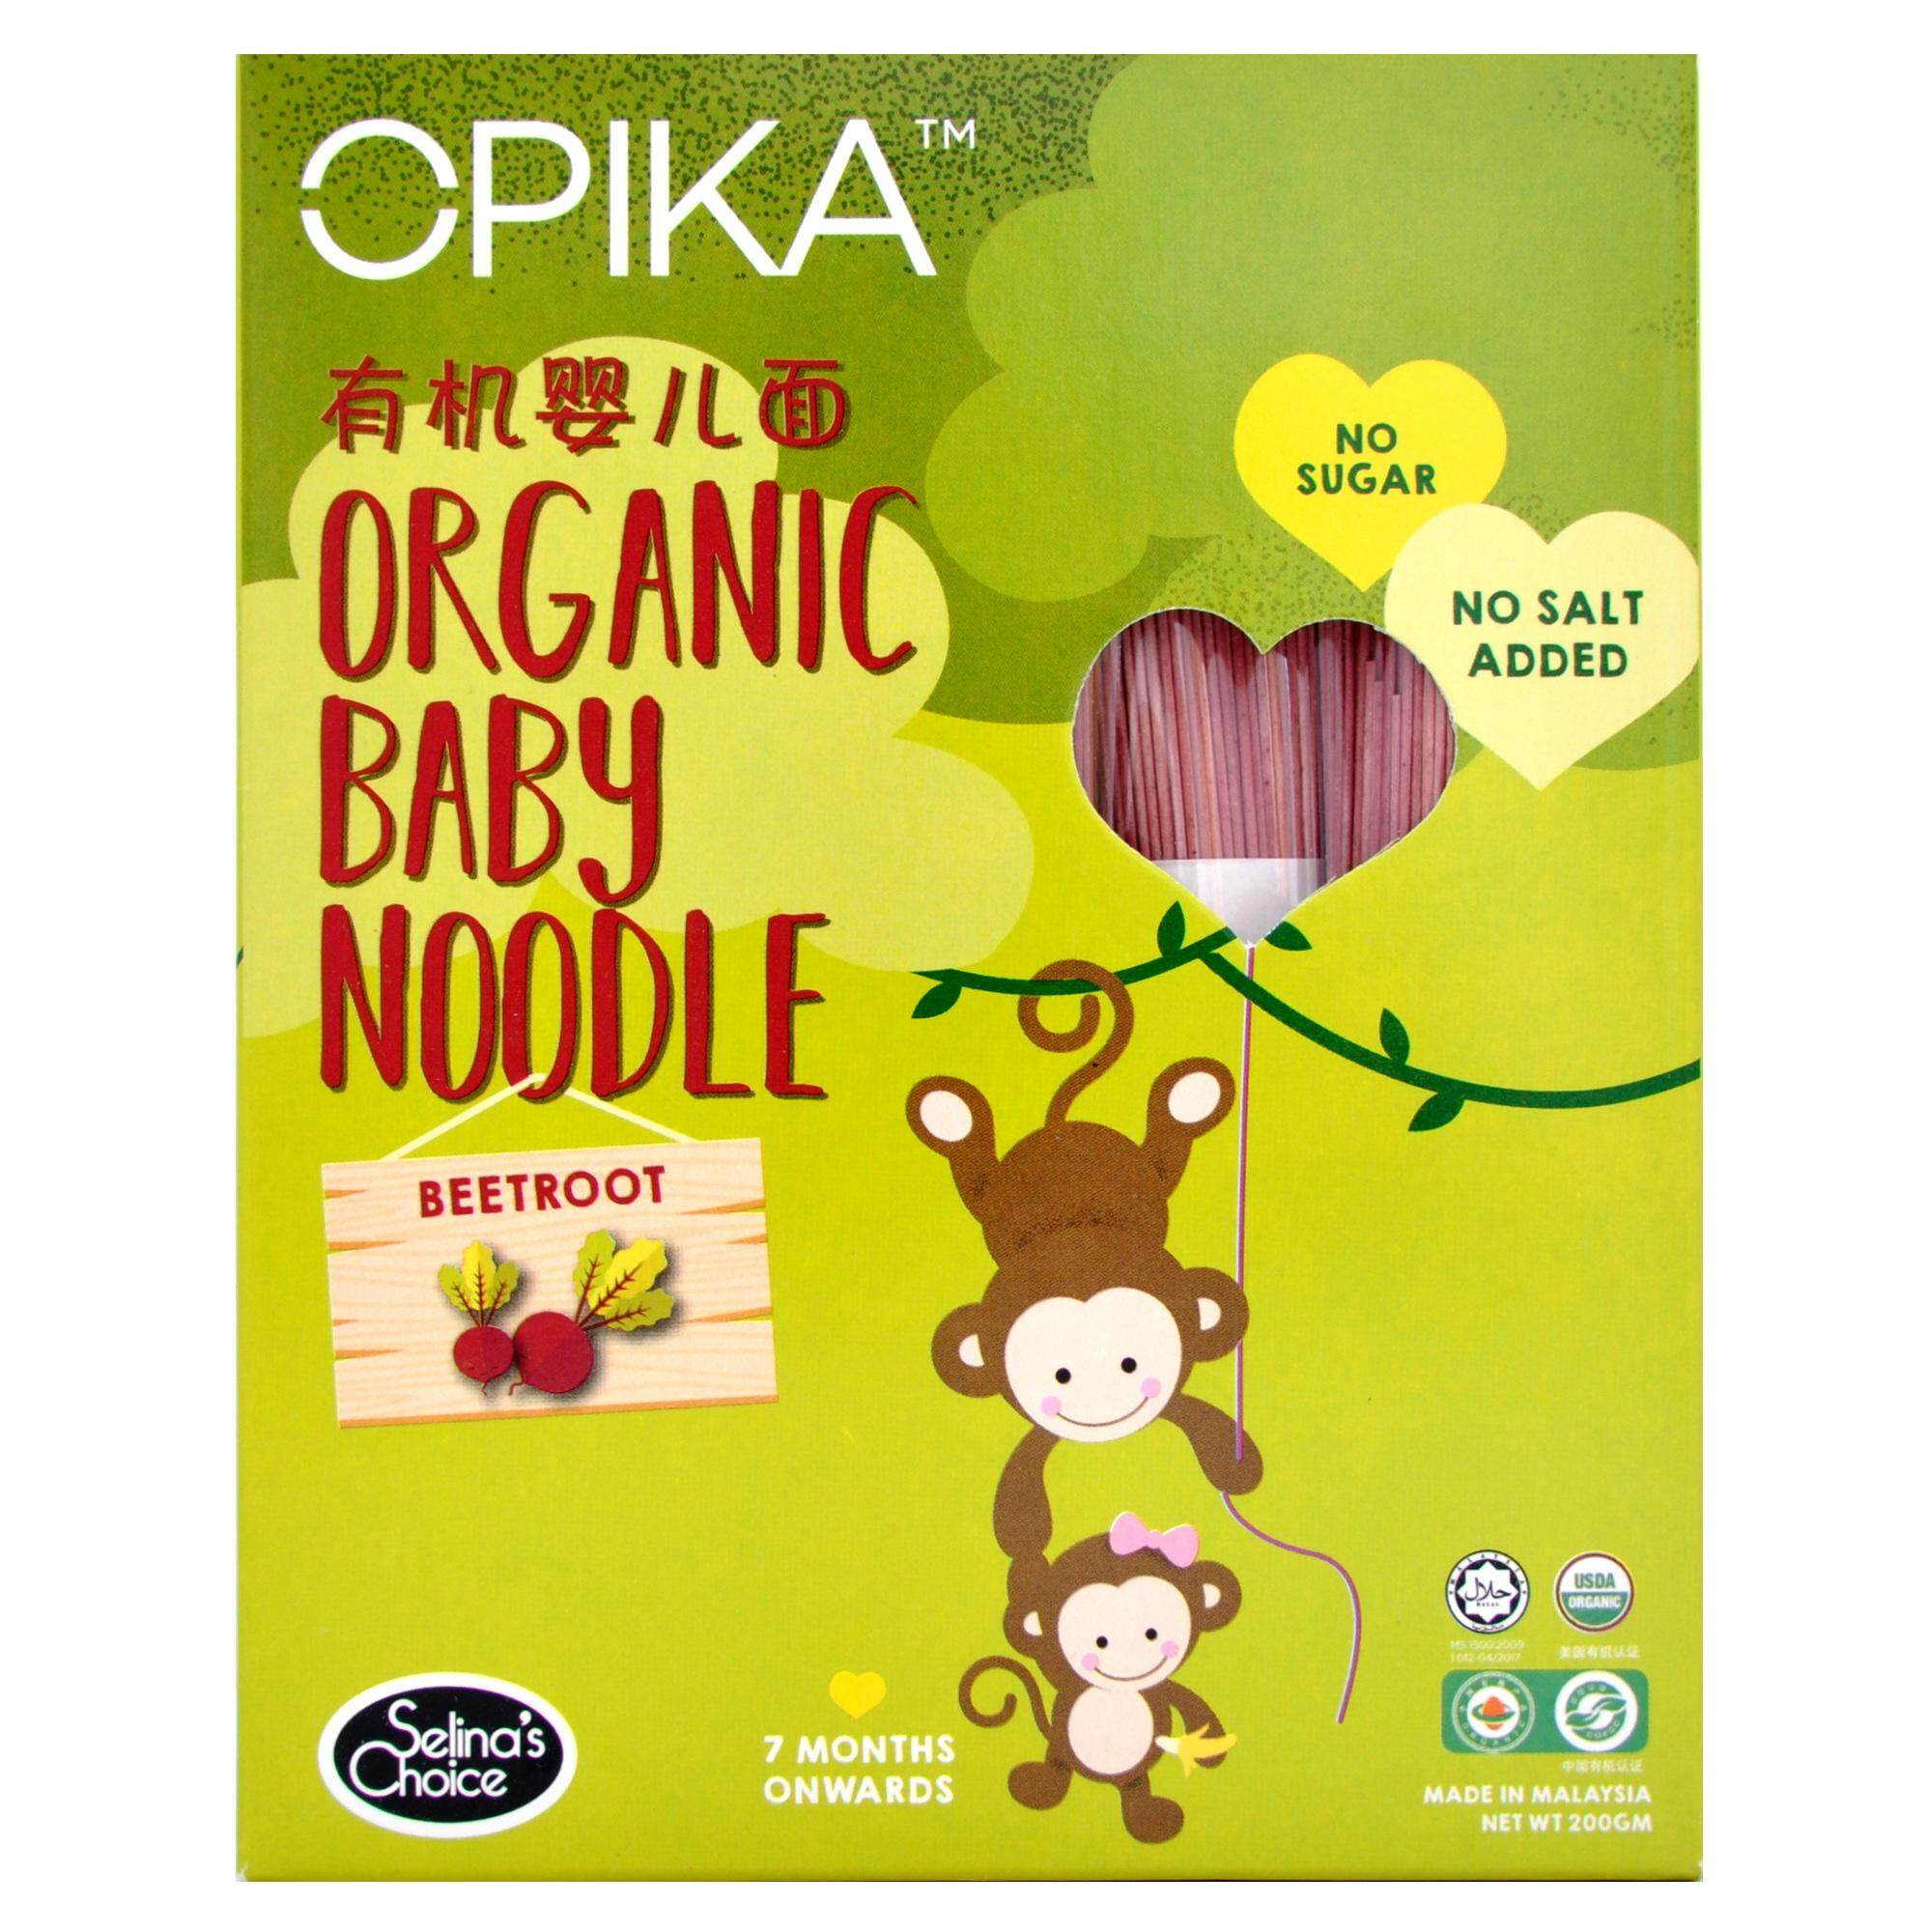 OPIKA Organic Baby Noodle, Beetroot - 7 months onwards, 200gm